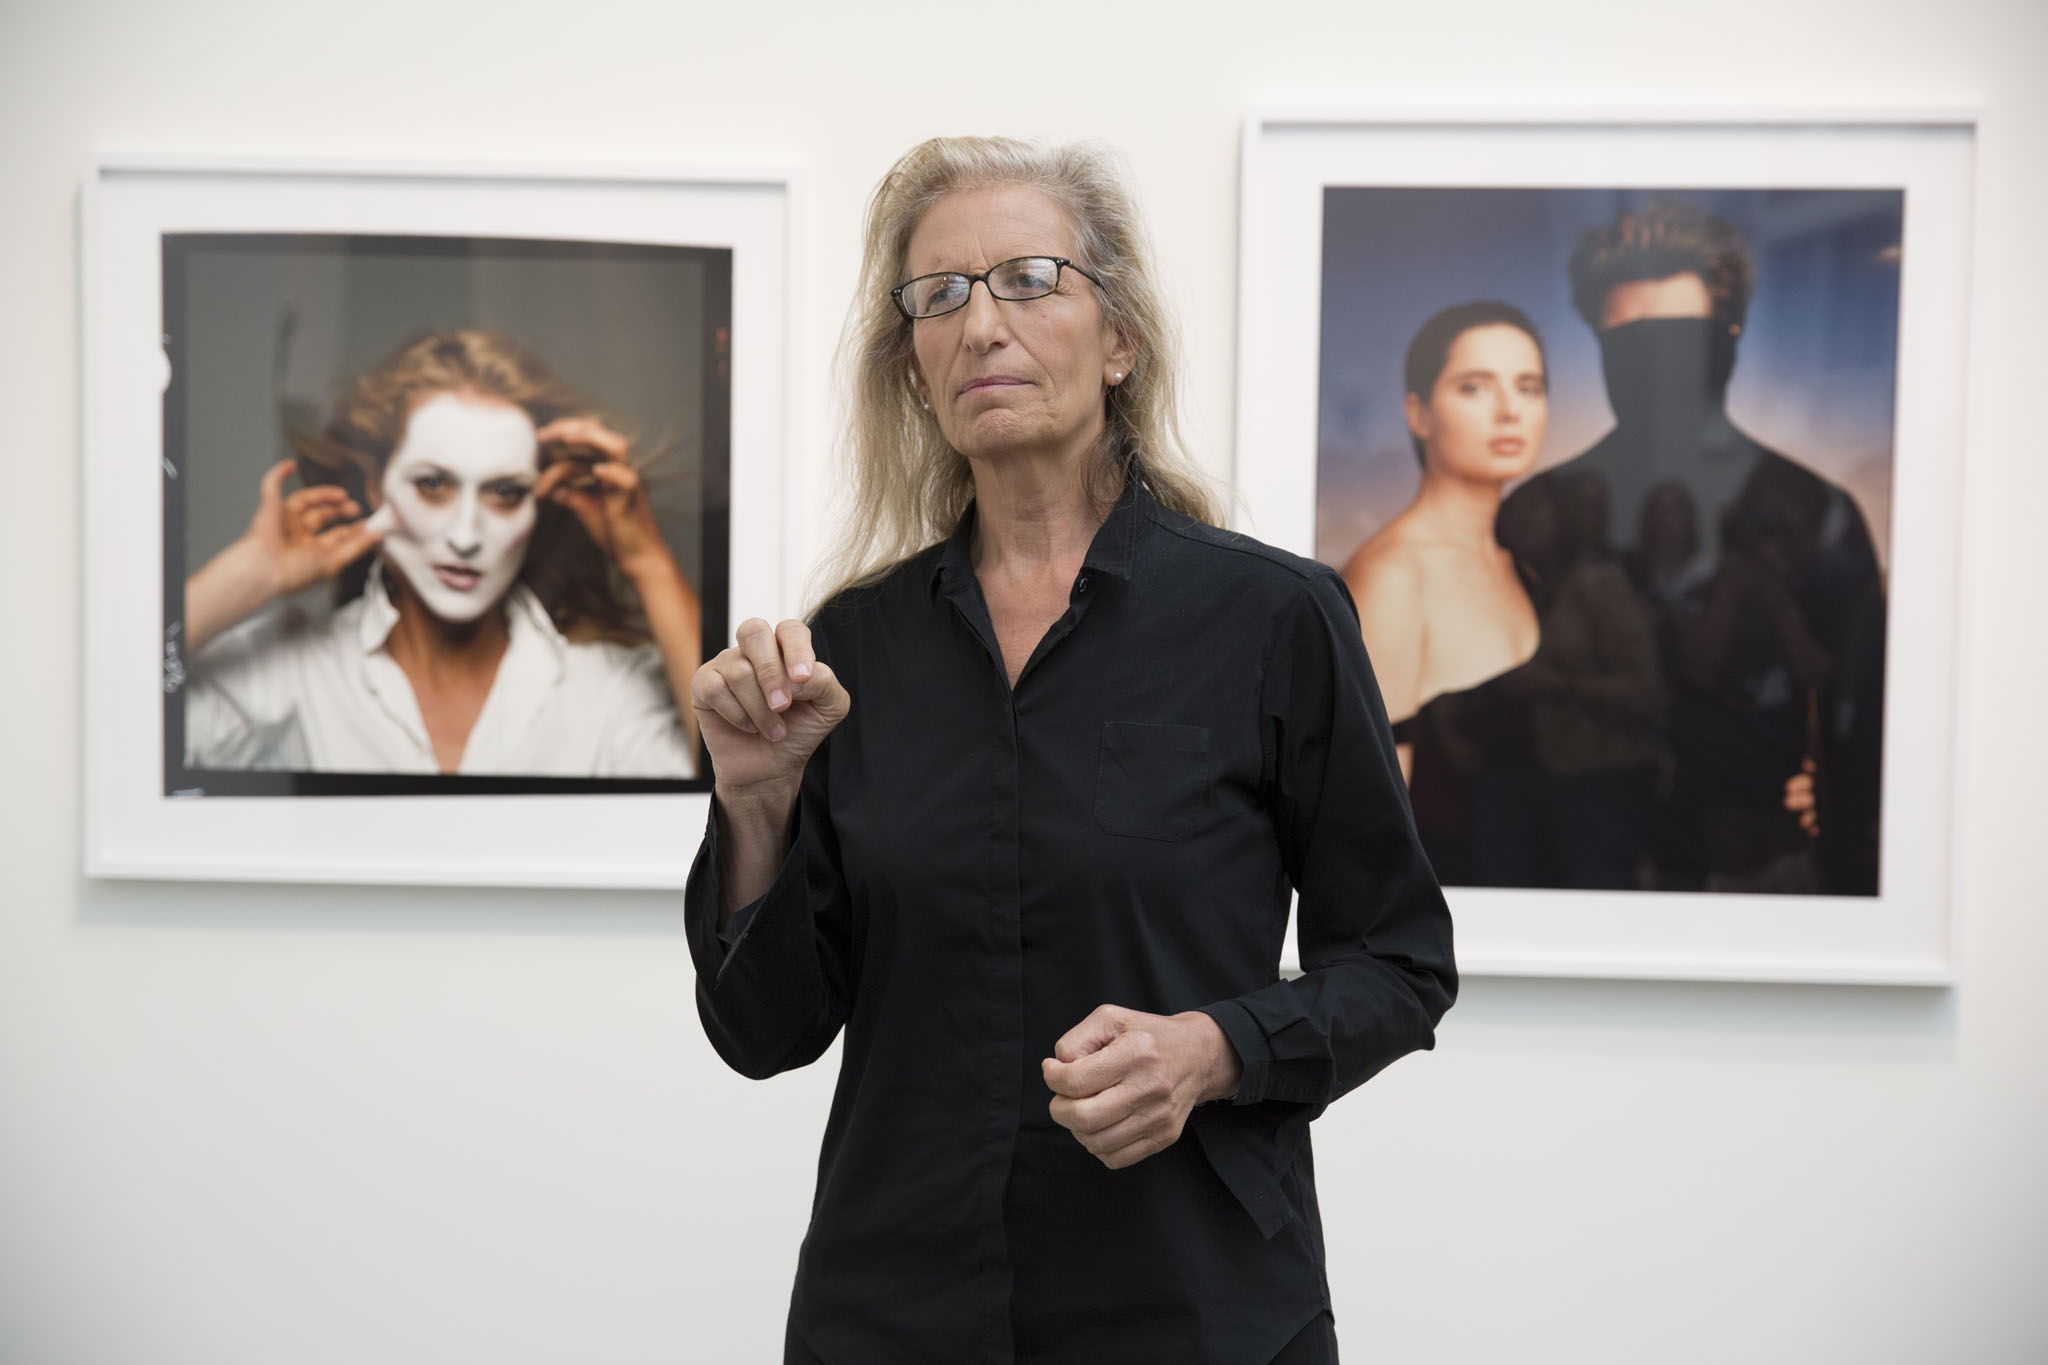 critical analysis of the photographic work of annie leibovitz essay Leibovitz has shown in international museum exhibitions, and received numerous photographic awards, yet most of her work is accessible and was originally published in commercial venues the blending of fine art and popular contexts lends her work a unique cultural cachet.